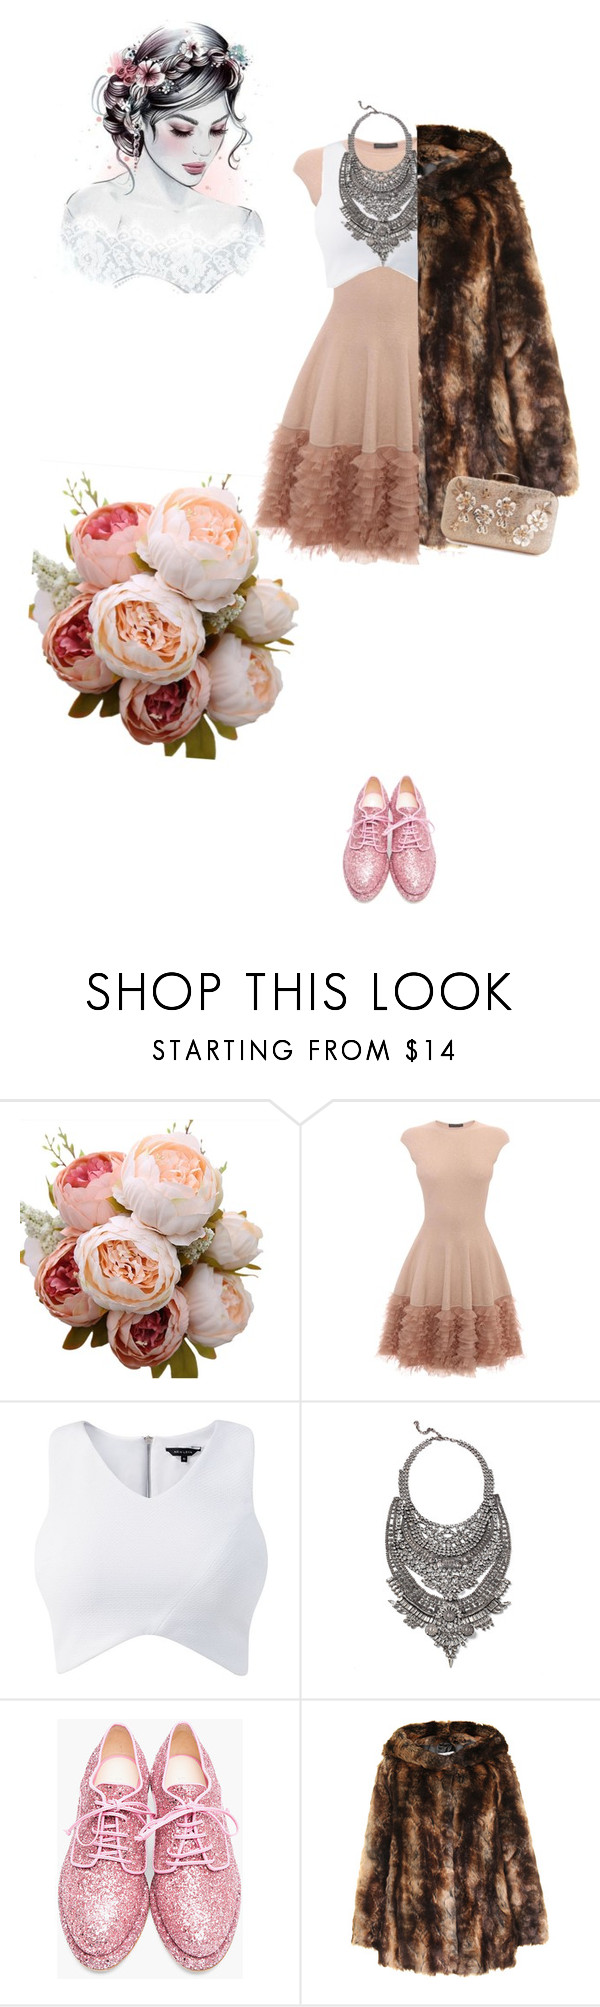 """""""Untitled #204"""" by stephaniefransway ❤ liked on Polyvore featuring Alexander McQueen, DYLANLEX and Simone Rocha"""